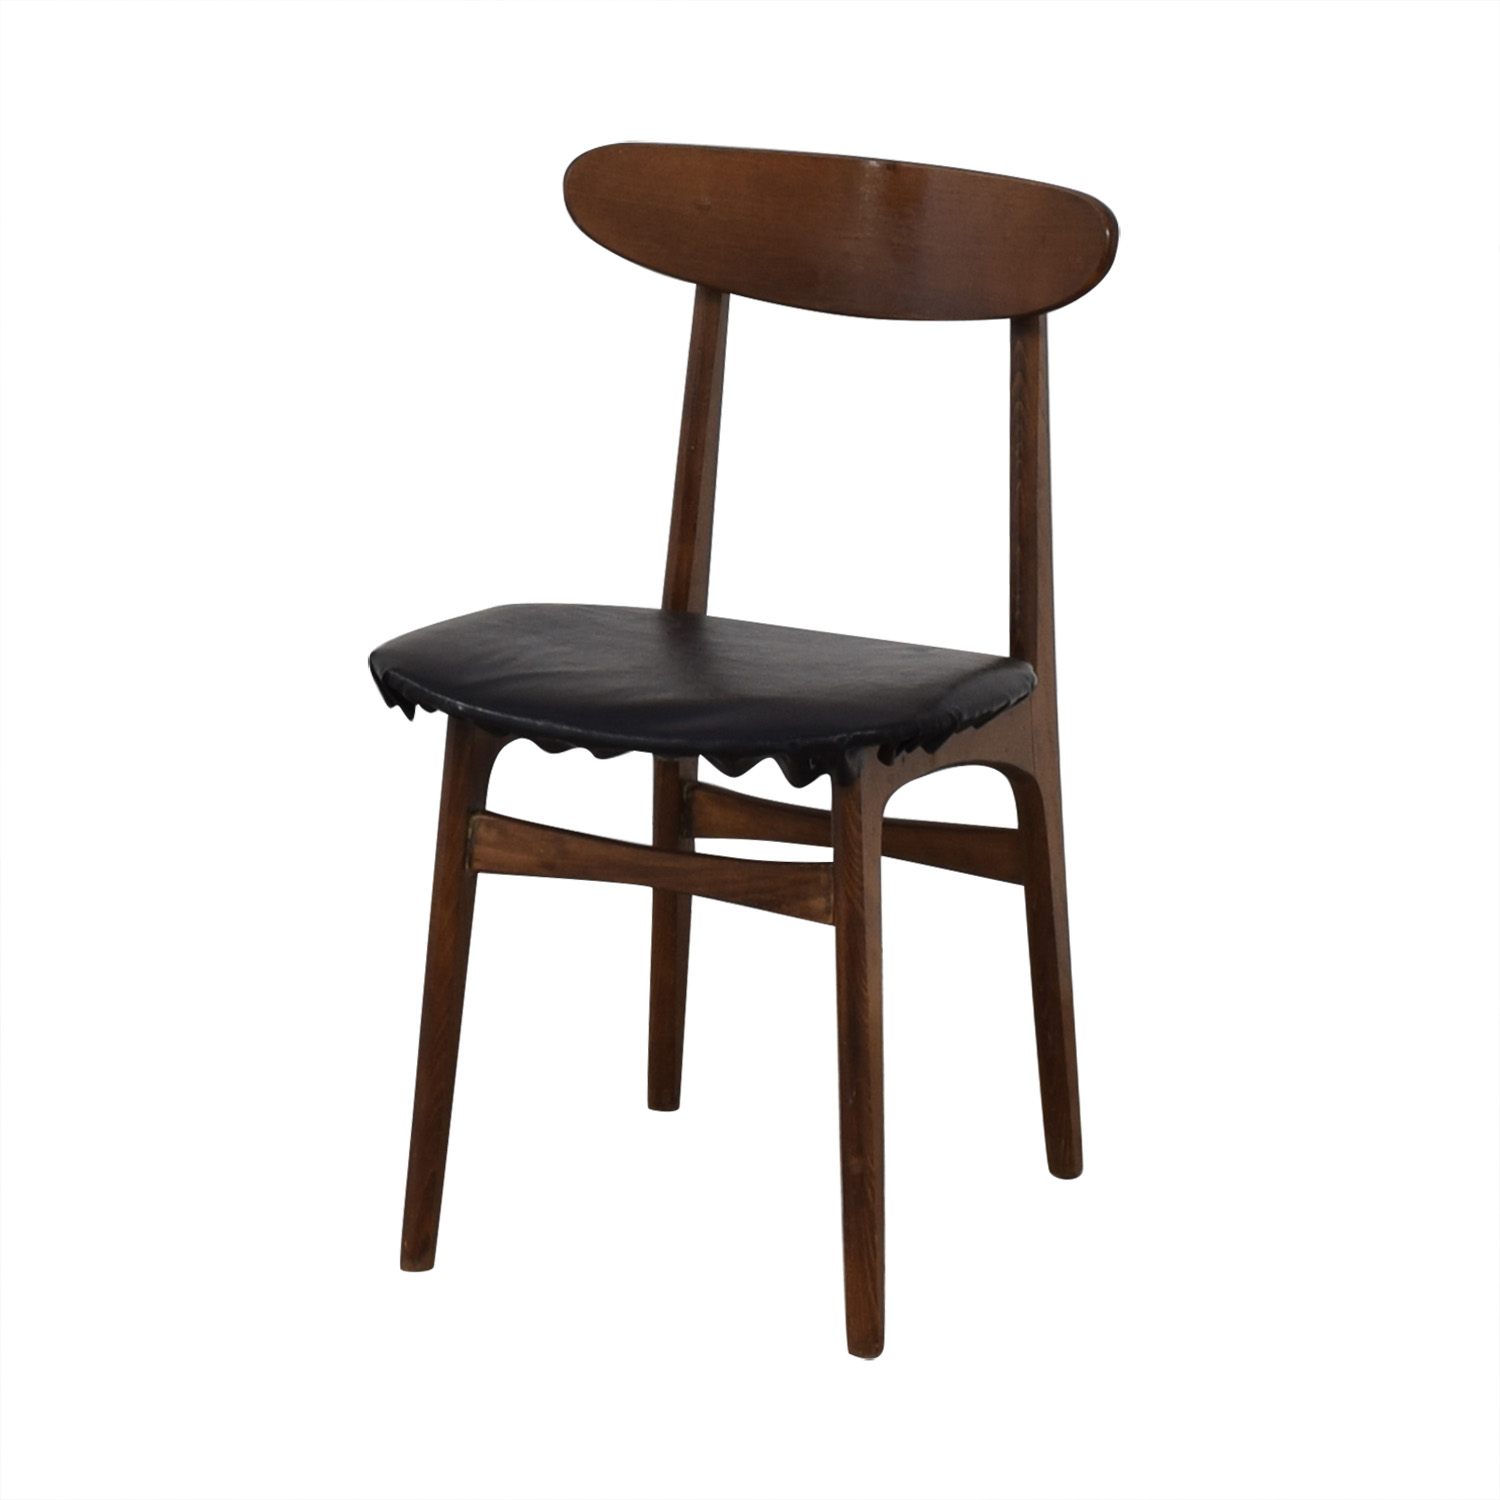 shop Vintage Wood Danish Chair  Dining Chairs